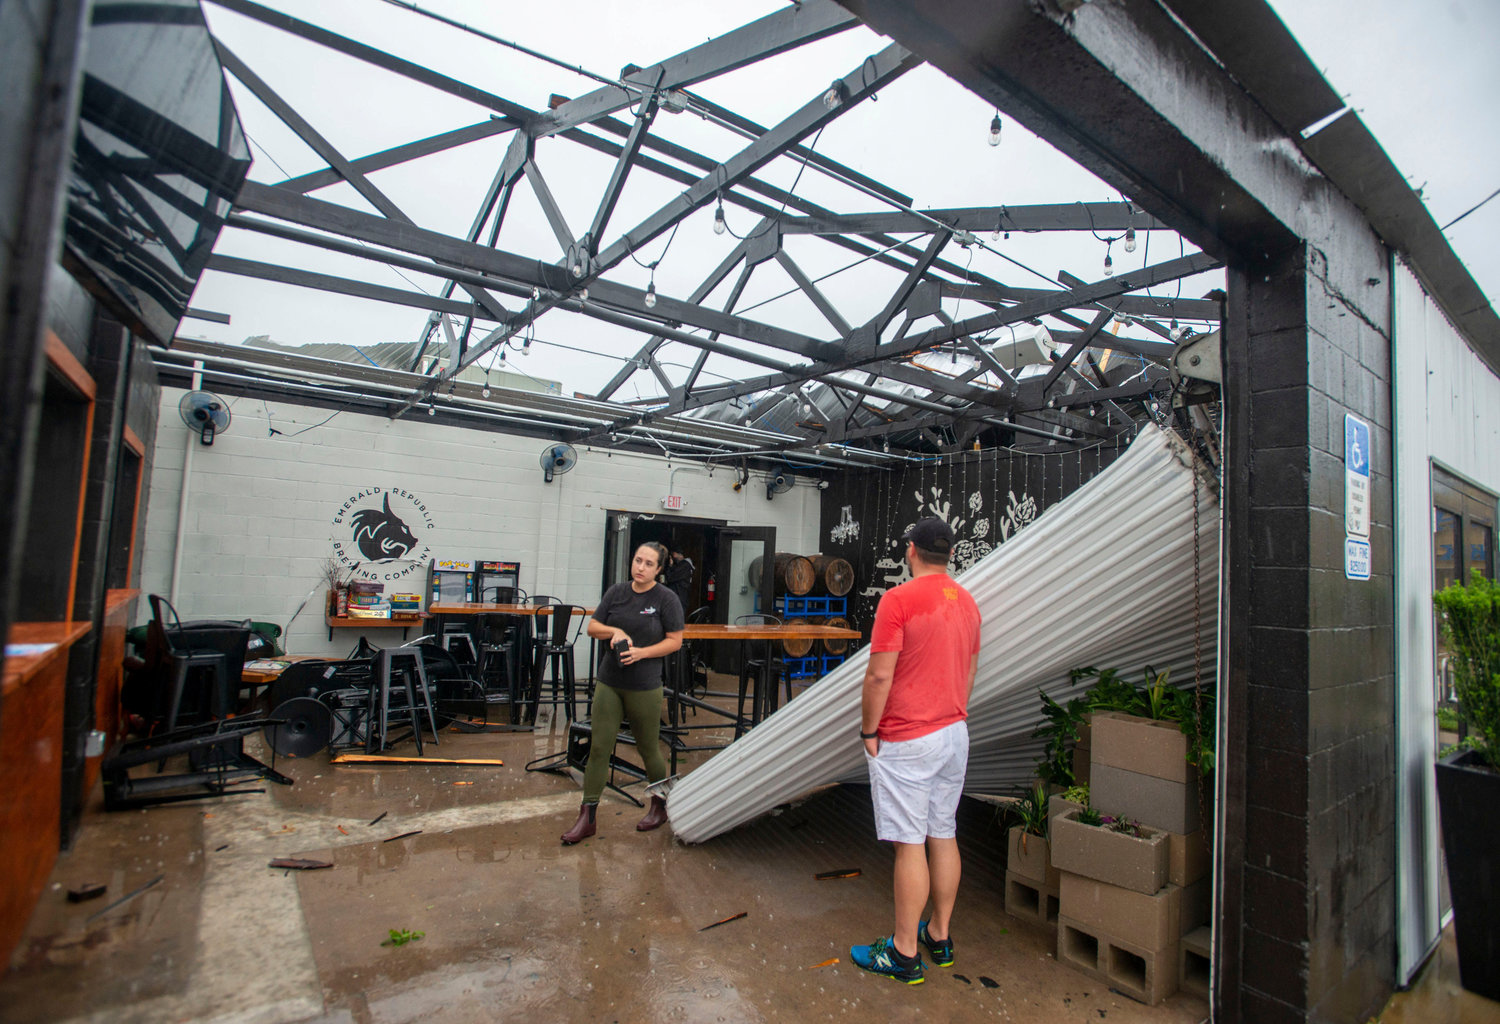 Employees assess the damage after the storm that came through Pensacola, Fla., and blew the roof off of Emerald Republic Brewing on Saturday, April 10, 2021.